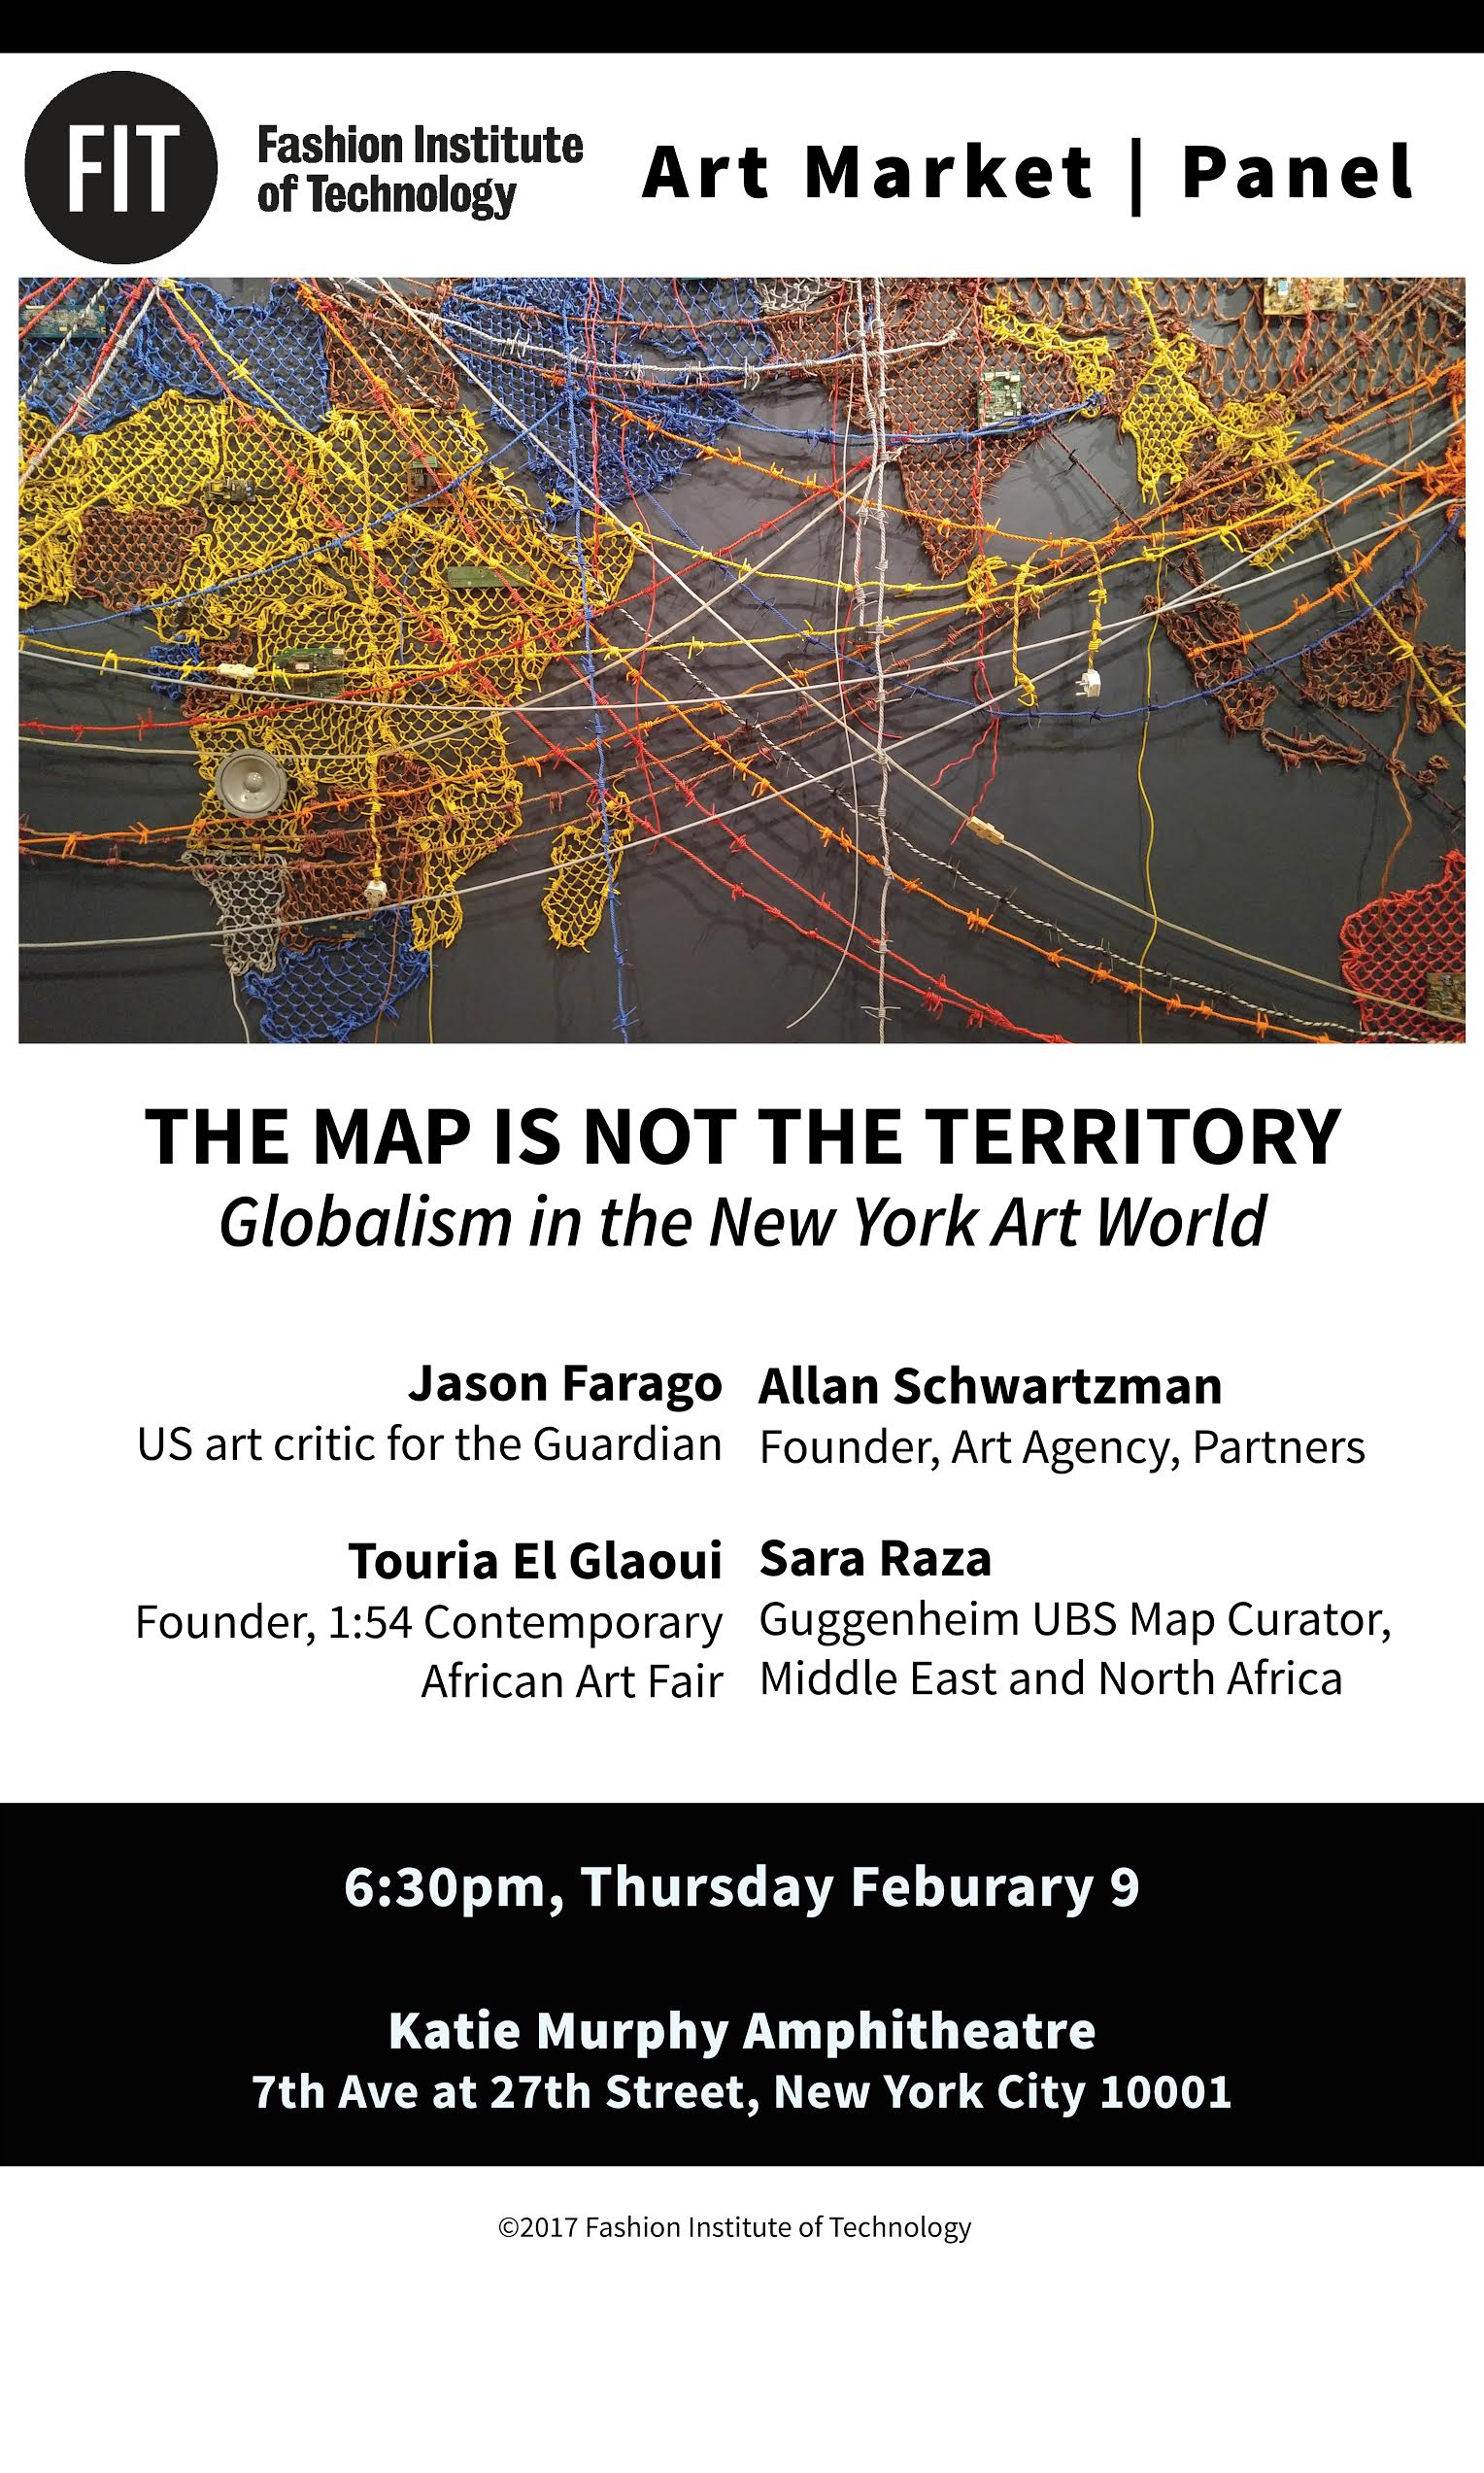 The Map Is Not The Territory Globalism In The New York Art World Will Explore The Way Global Contemporary Art Including Work From Previously Overlooked